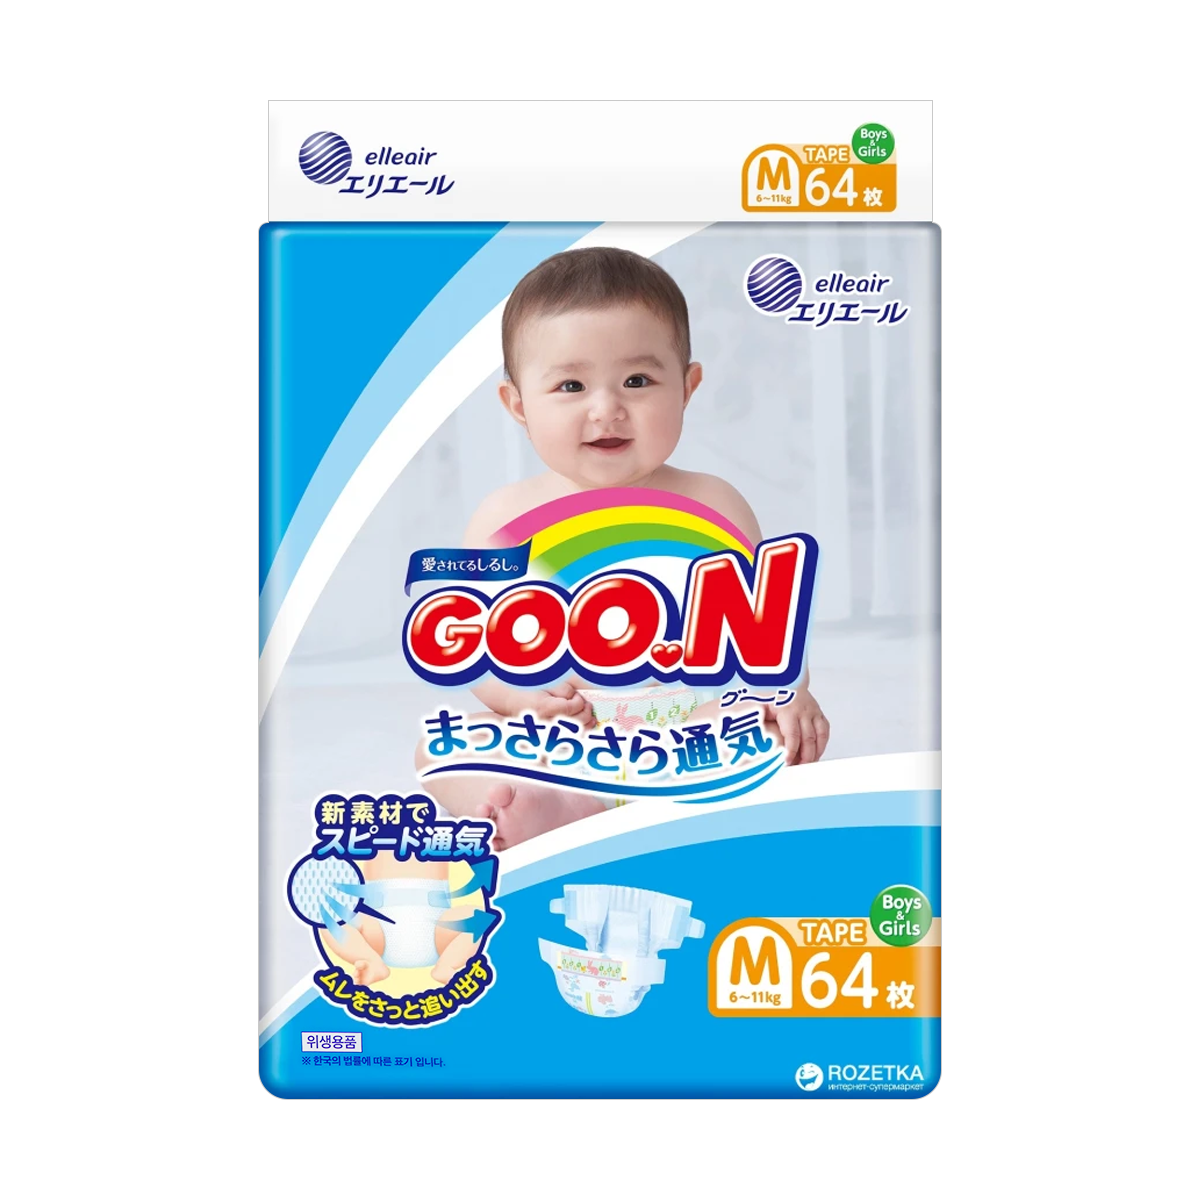 Yamibuy.com:Customer reviews:Baby Diaper Tape Type M Size 6-11kg 64pc (with Vitamin E)